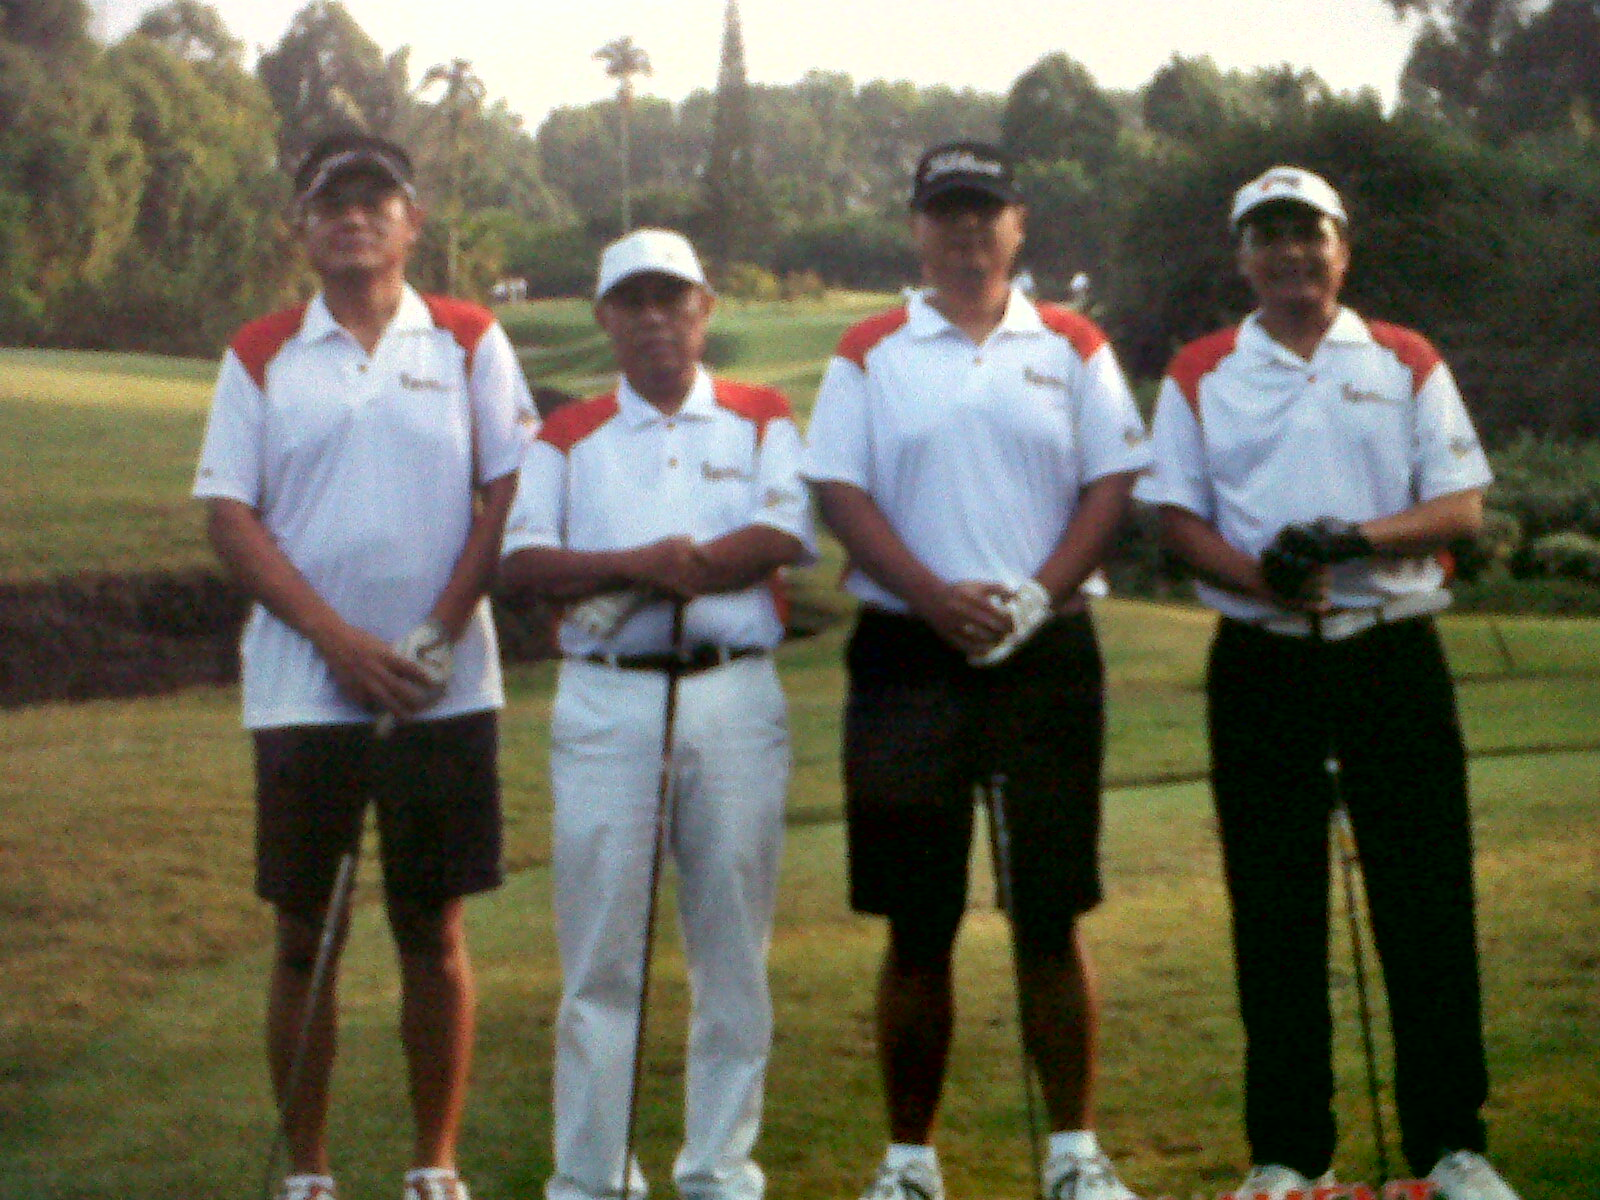 ISUZU GOLF TOURNAMENT 2015